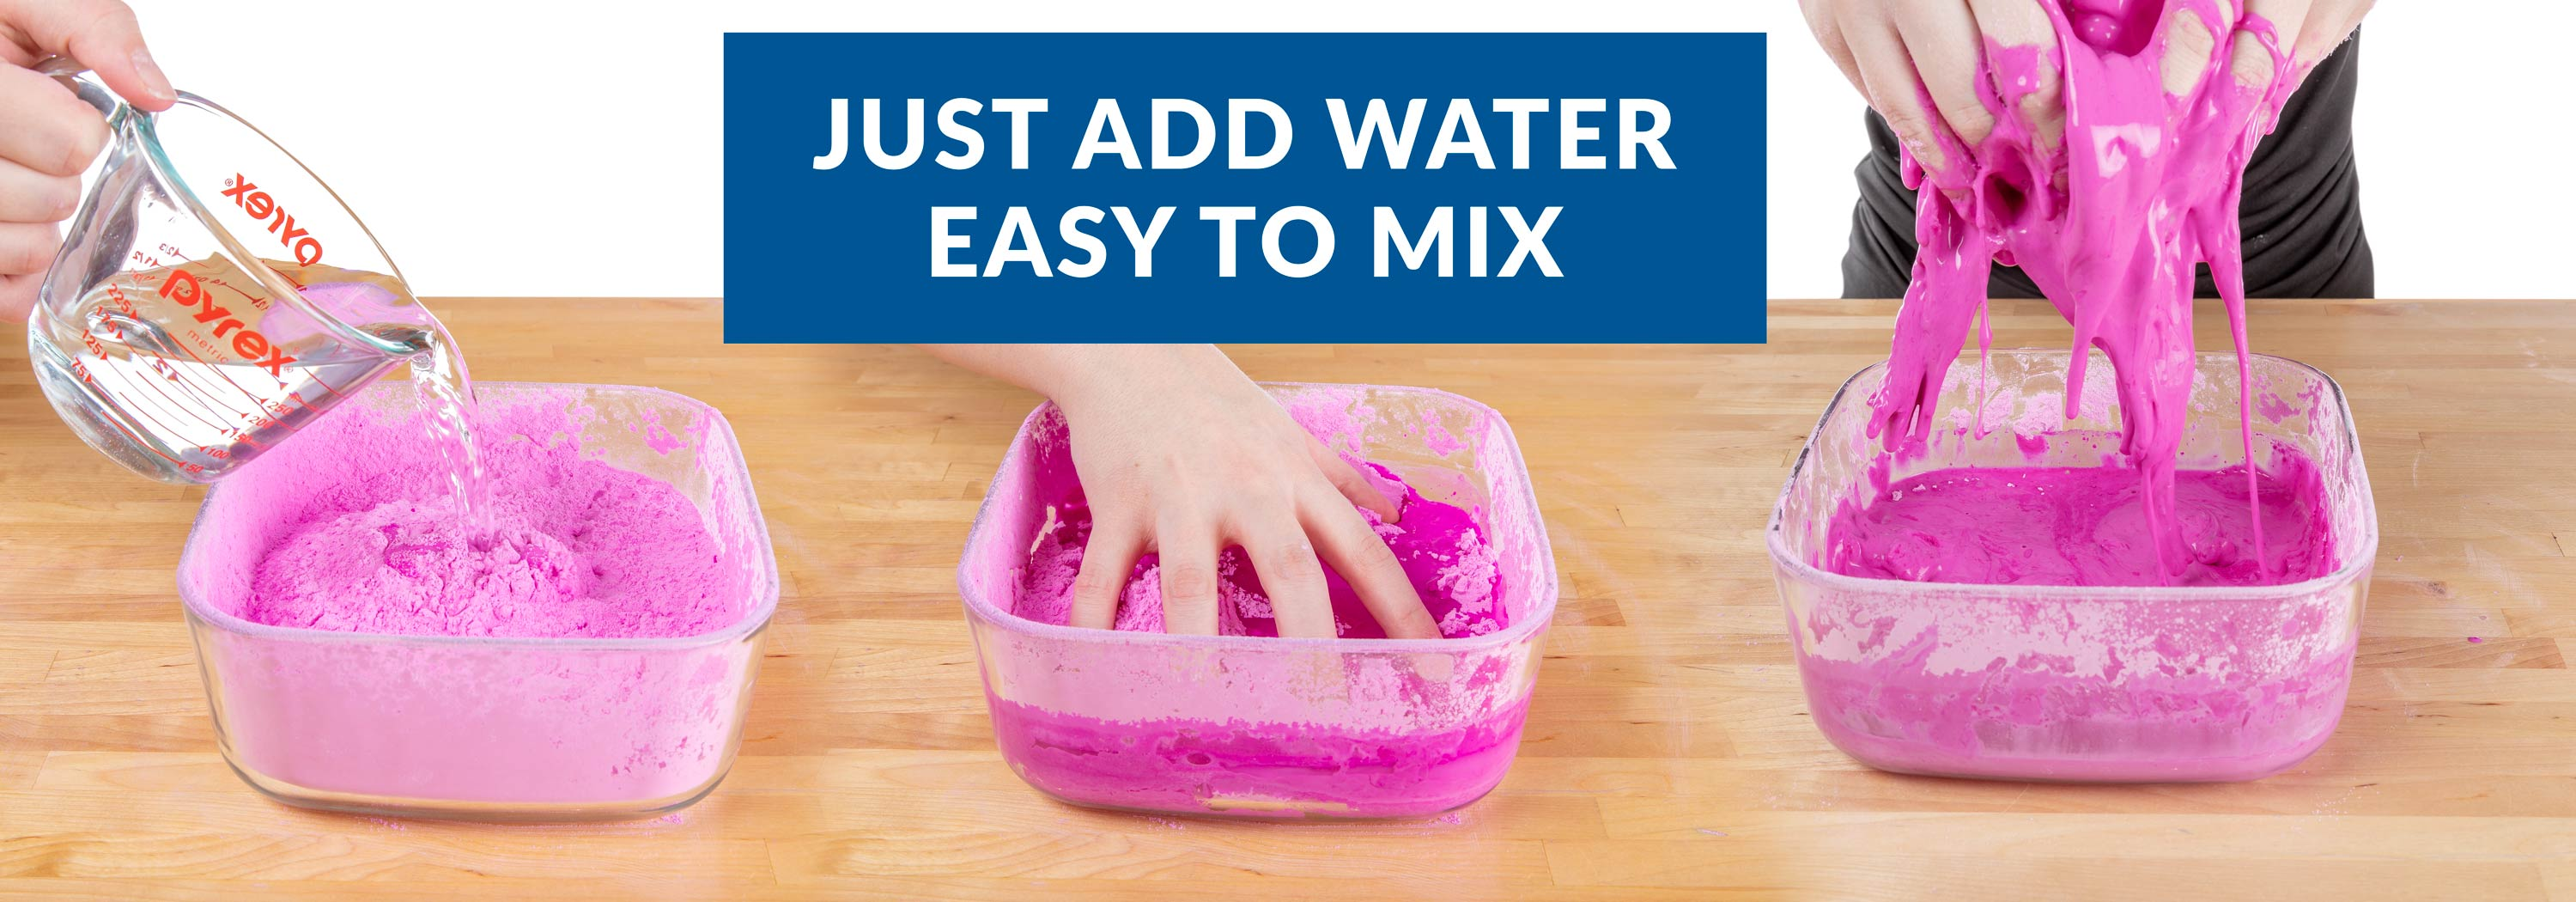 Oobleck is easy to mix - just add water